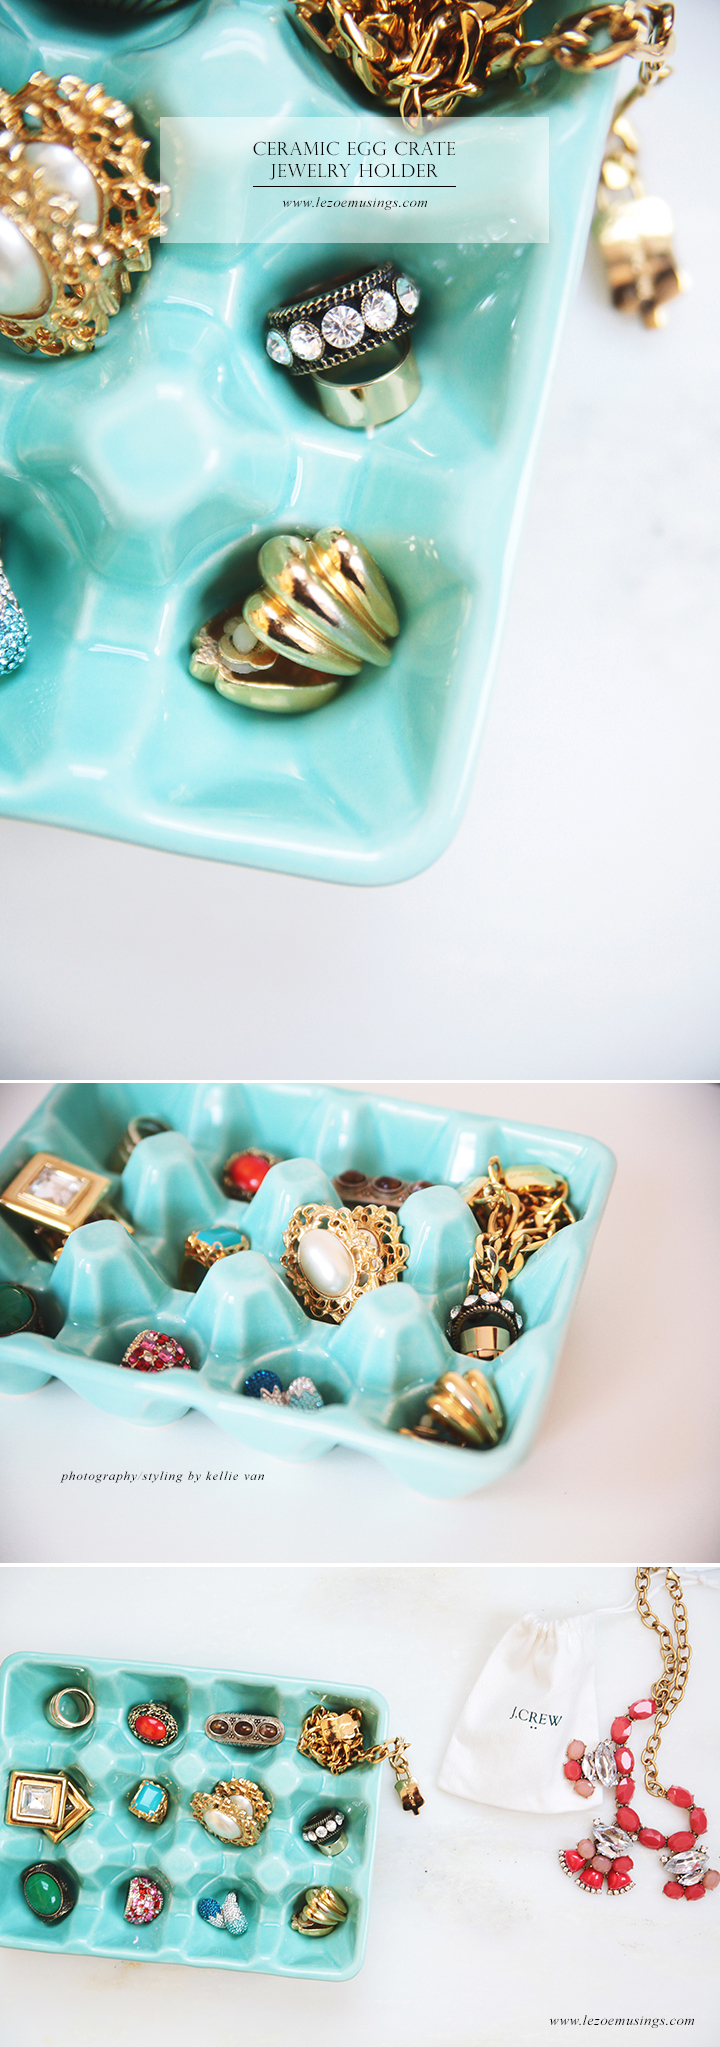 Ceramic Egg Crate Jewelry Holder by Le Zoe Musings 2